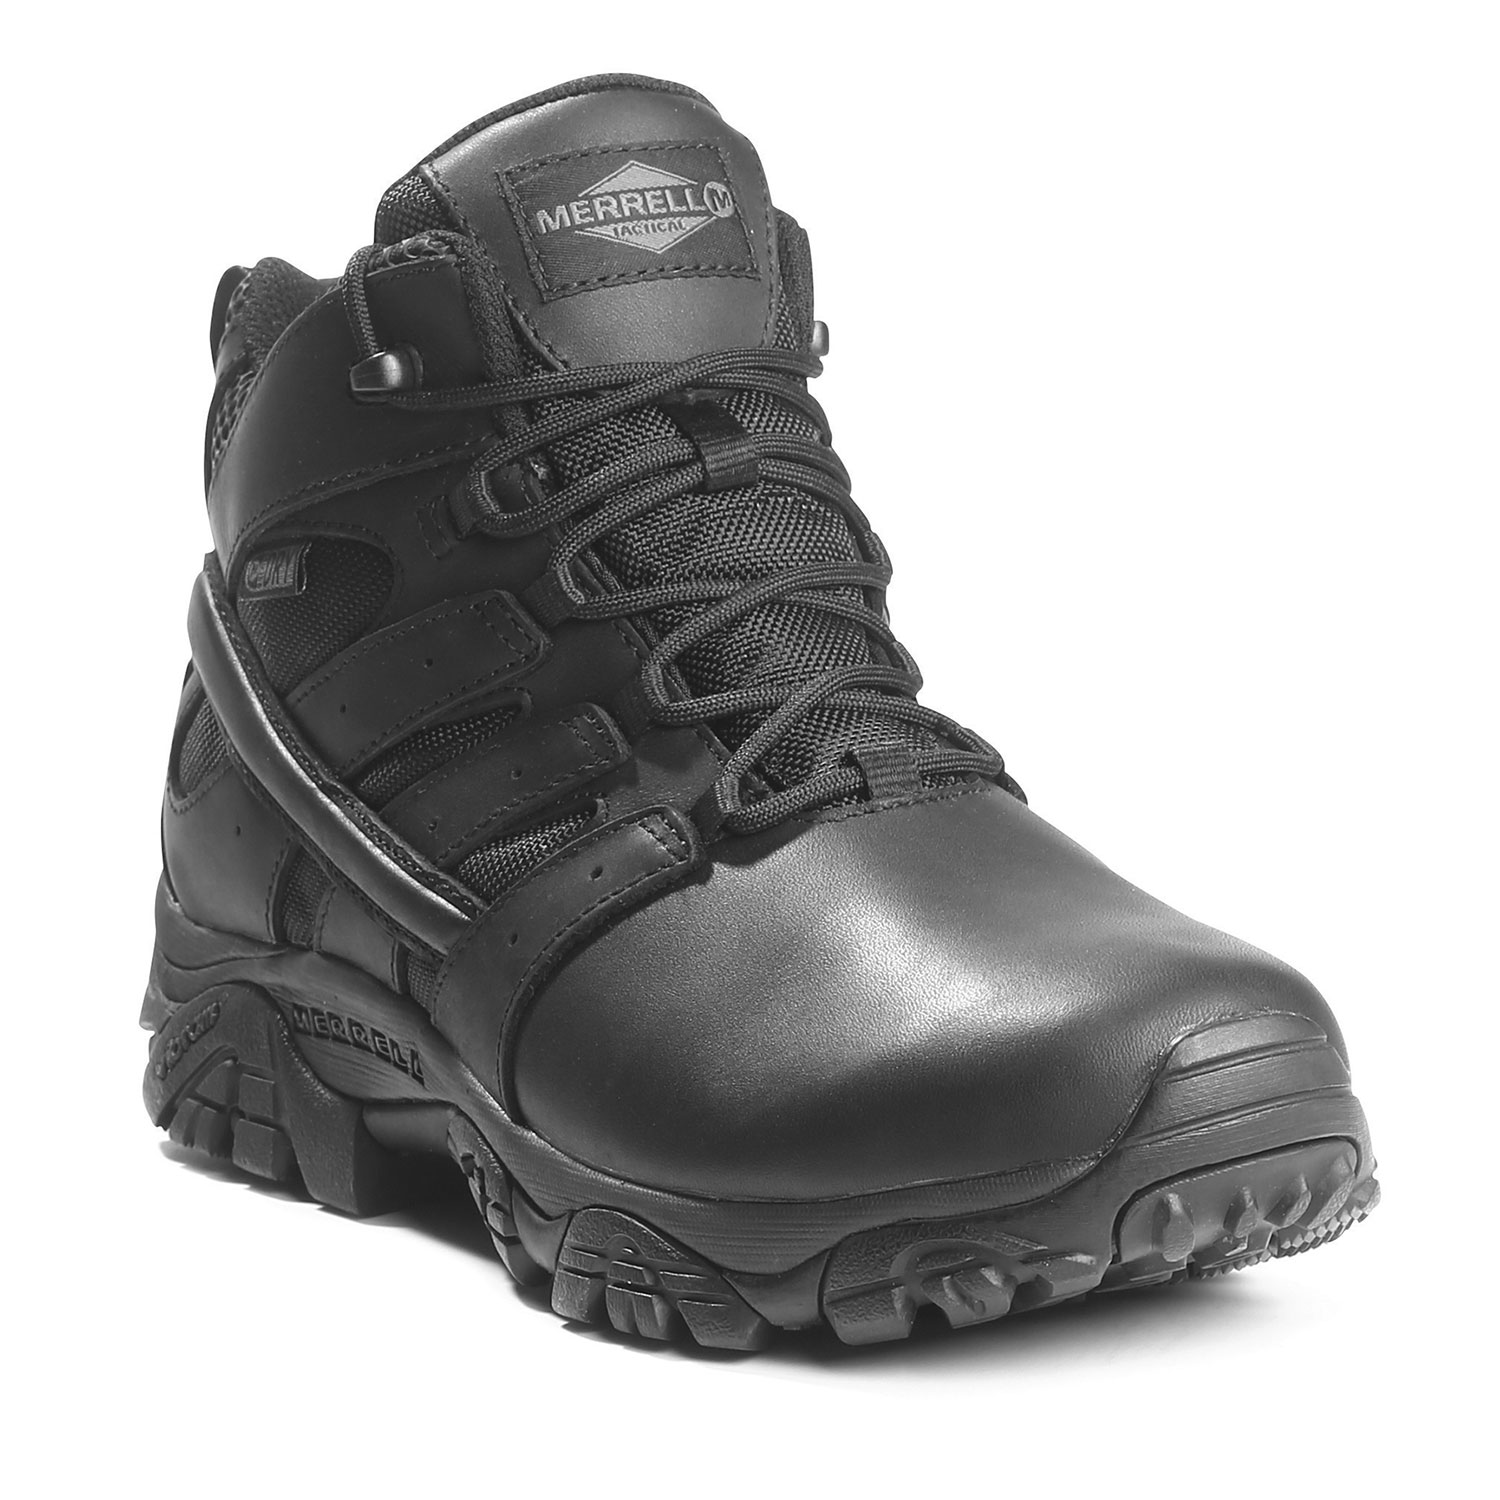 92d3bf7f7bf Merrell Moab 2 Mid Tactical Response Waterproof Boots.